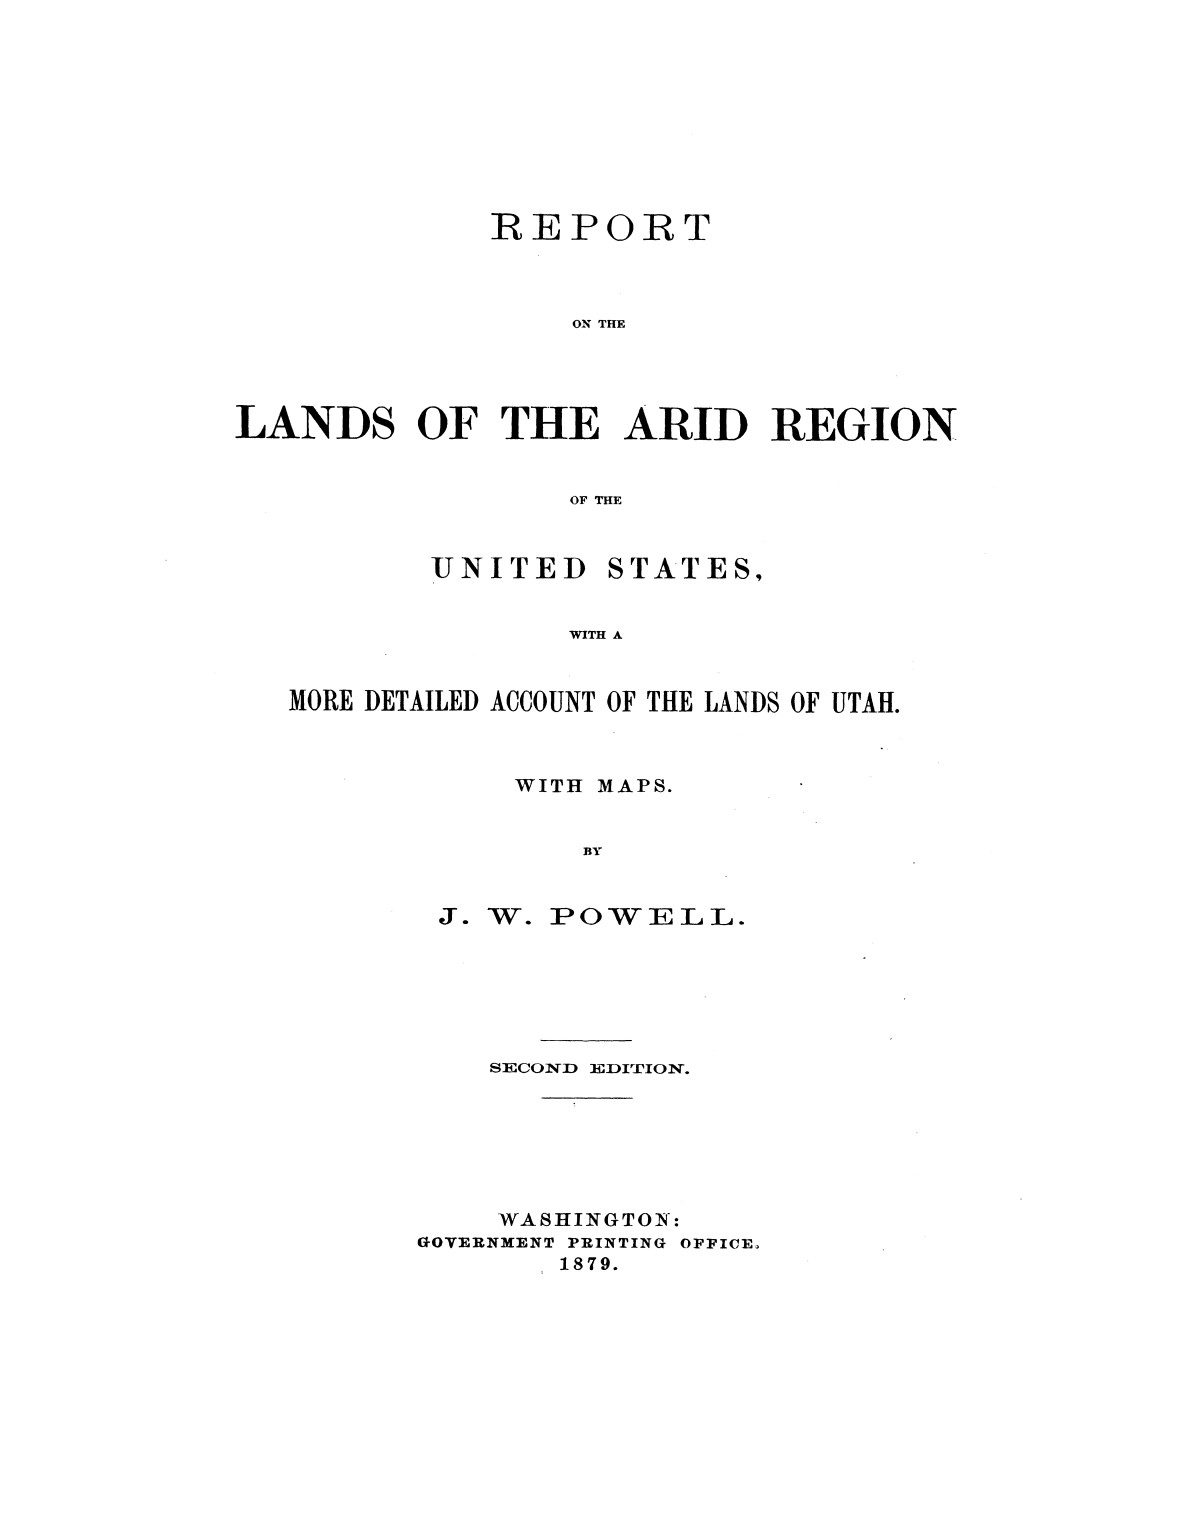 Report on the Lands of the Arid Region of the United States, with a More Detailed Account of the Lands of Utah. With Maps.                                                                                                      I